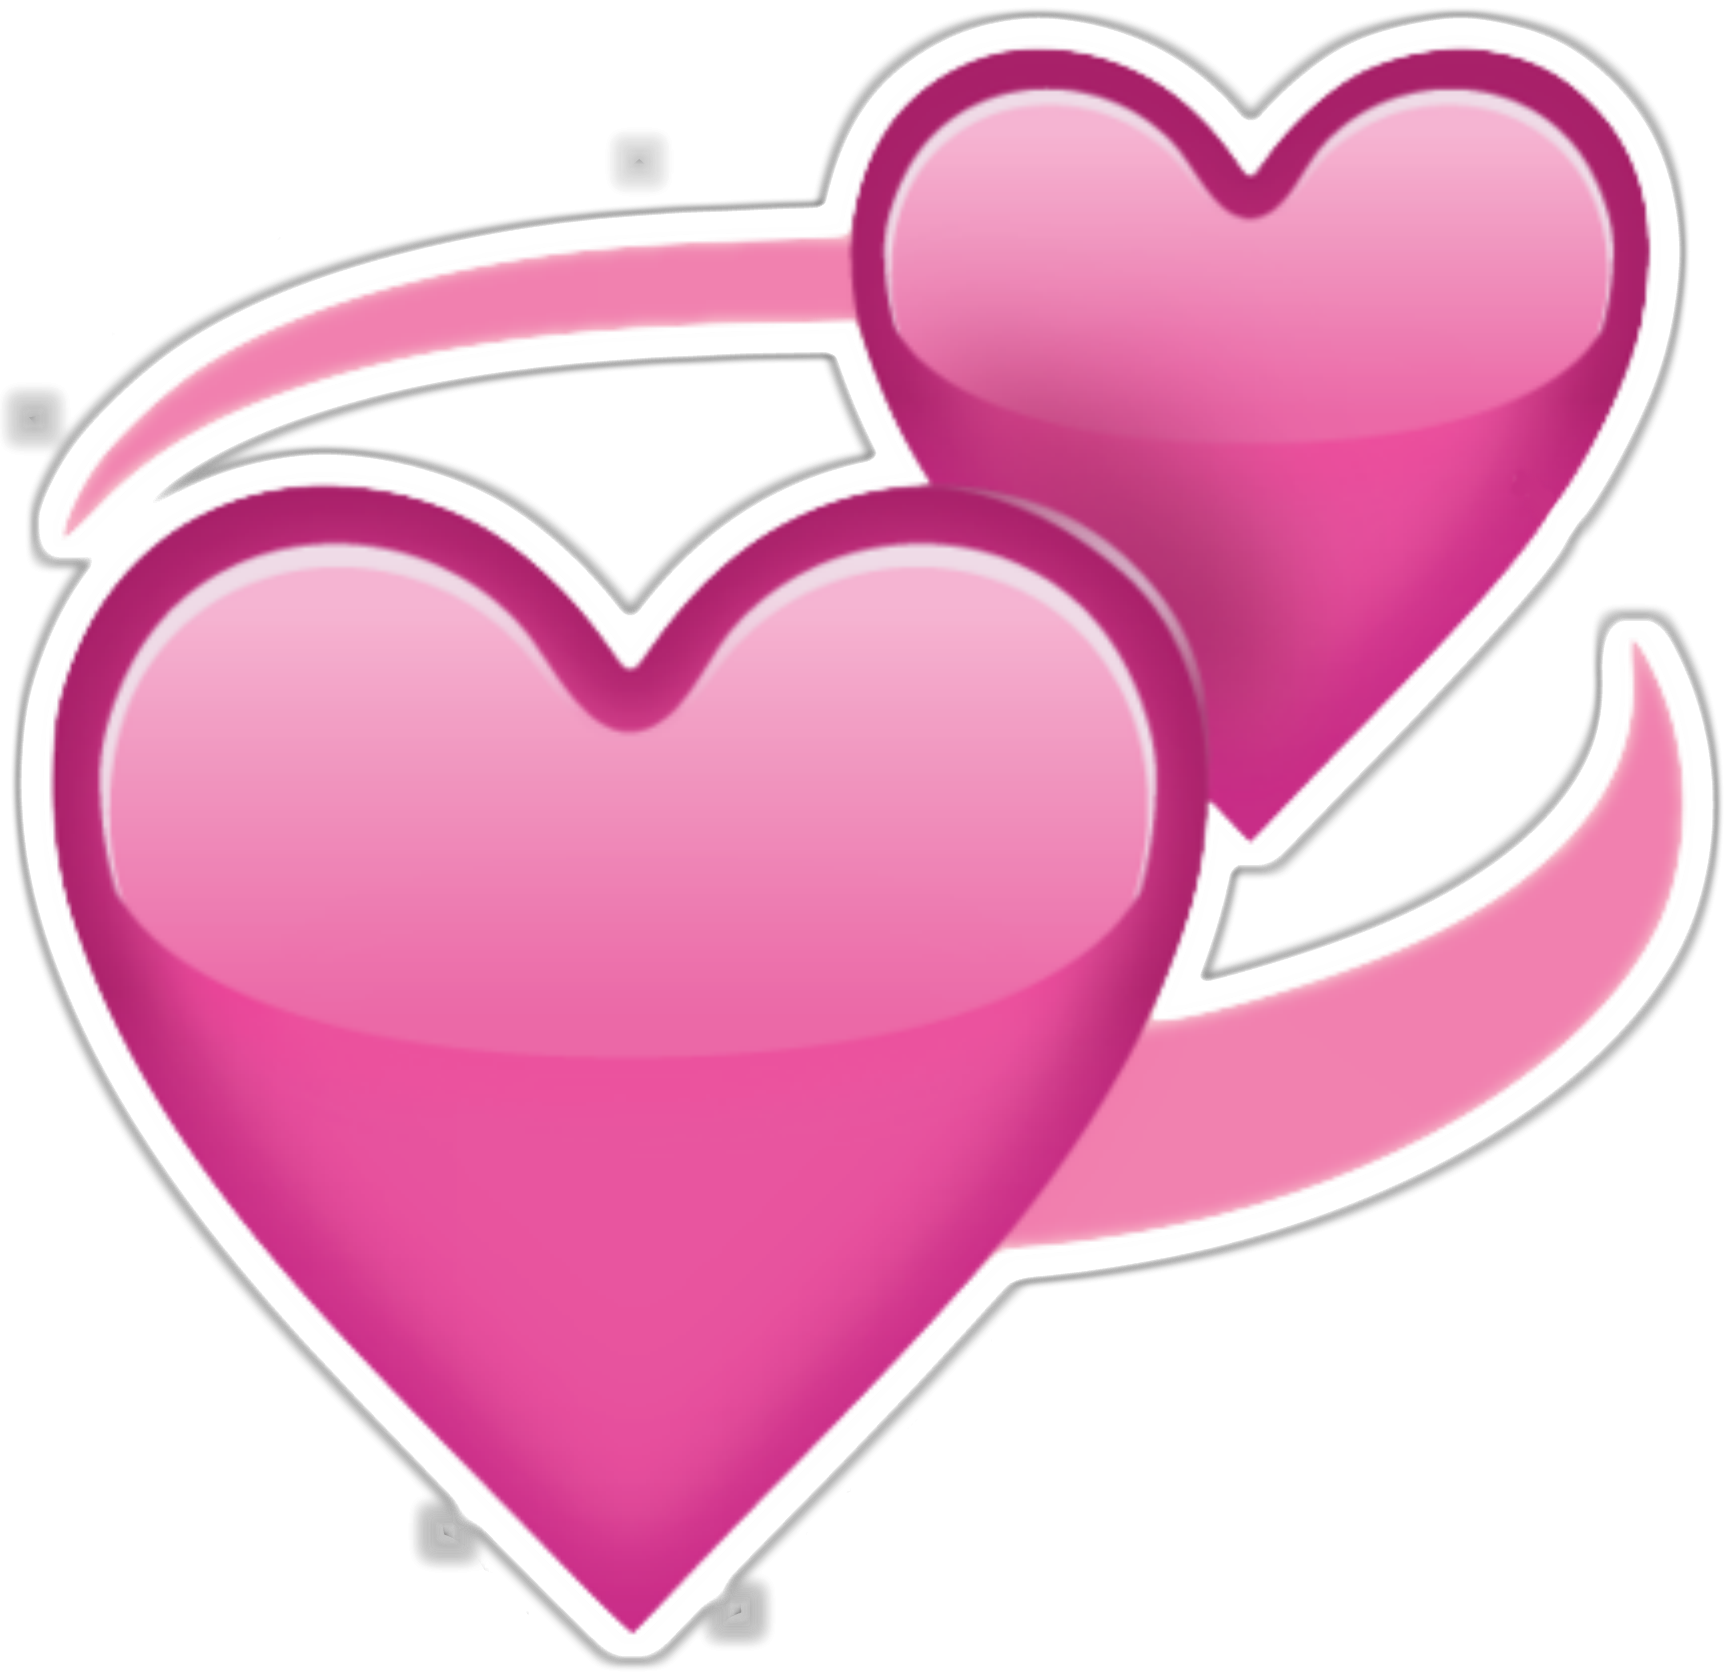 Pink Love Heart PNG HD-PlusPNG.com-1728 - Pink Love Heart PNG HD